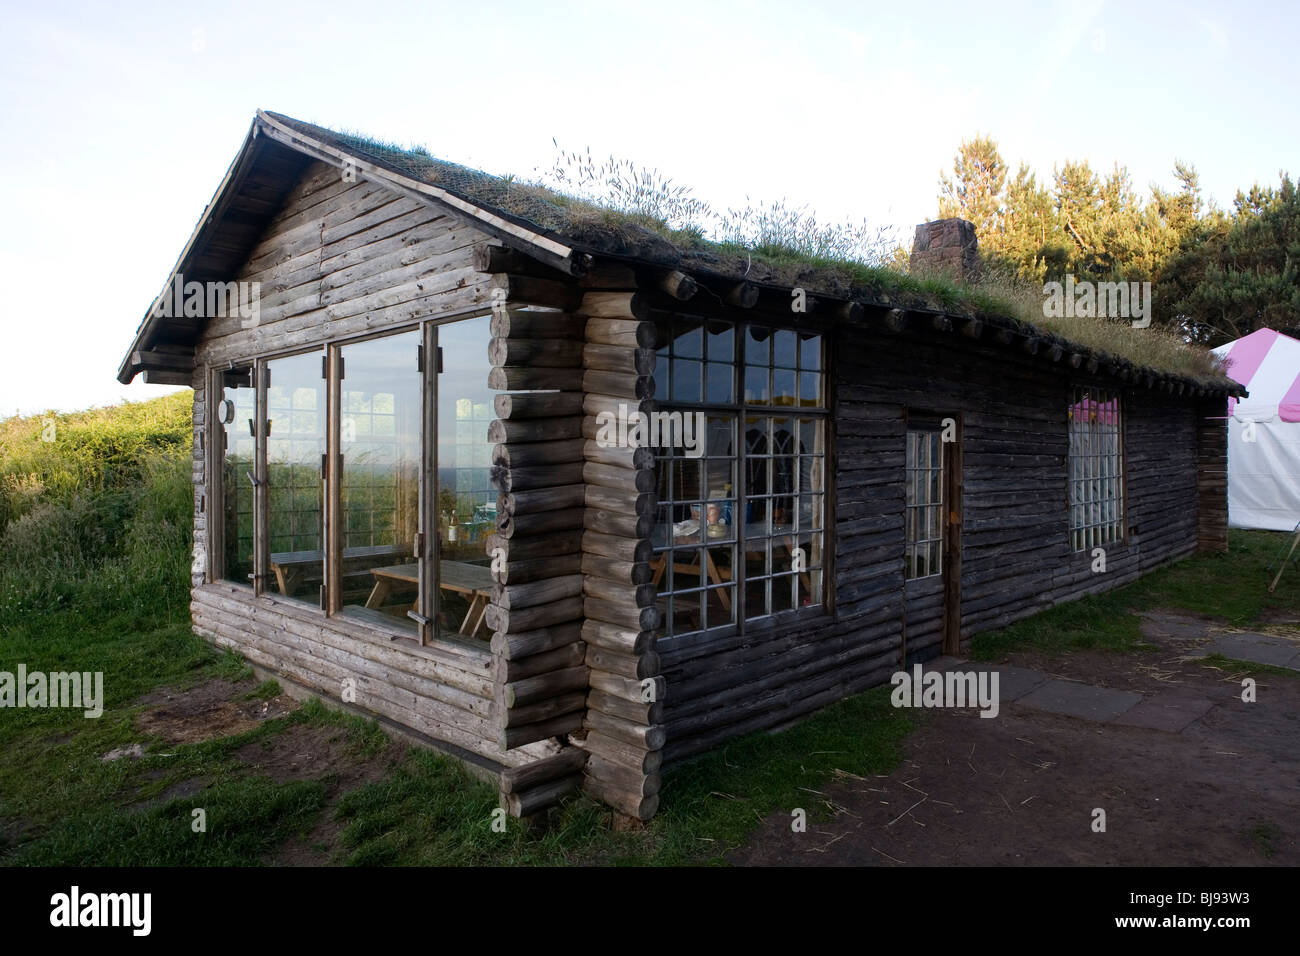 wooden country cottage with turfed roof and large windows party tent in the background & wooden country cottage with turfed roof and large windows party ...